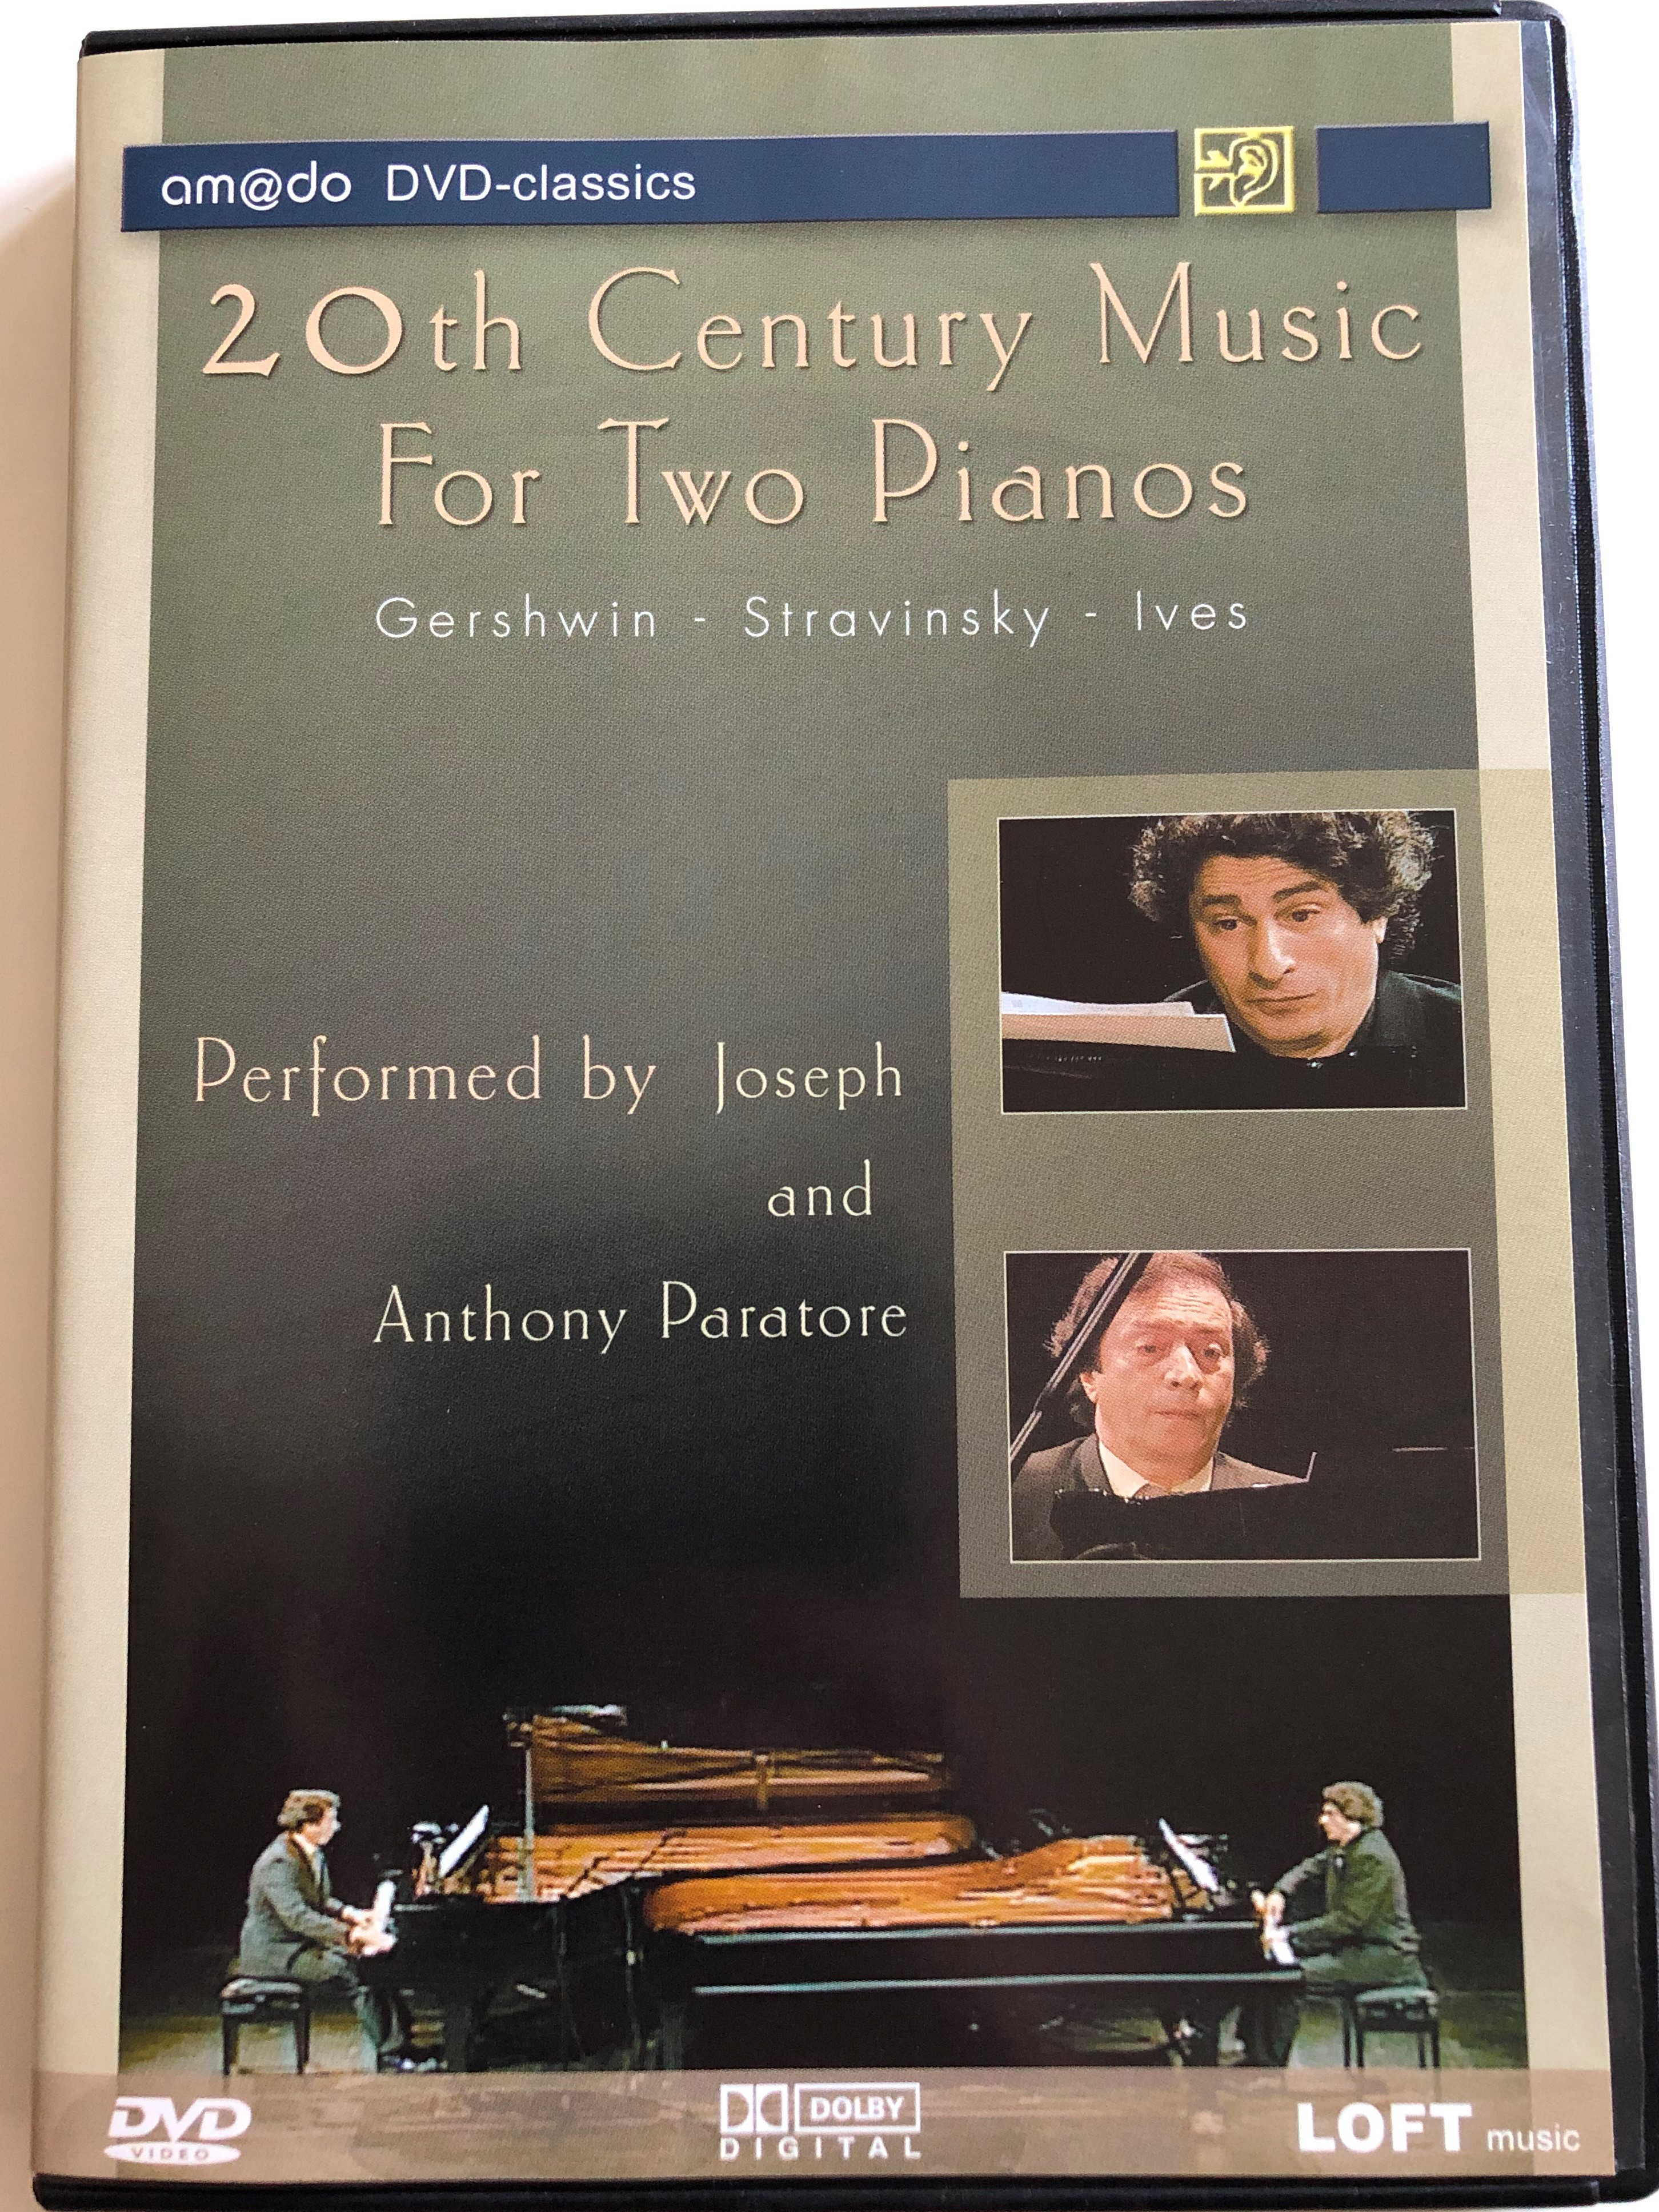 20th-century-music-for-two-pianos-dvd-2003-igor-stravinsky-charles-ives-george-gershwin-performed-by-anthony-and-joseph-paratore-amado-dvd-classics-1-.jpg